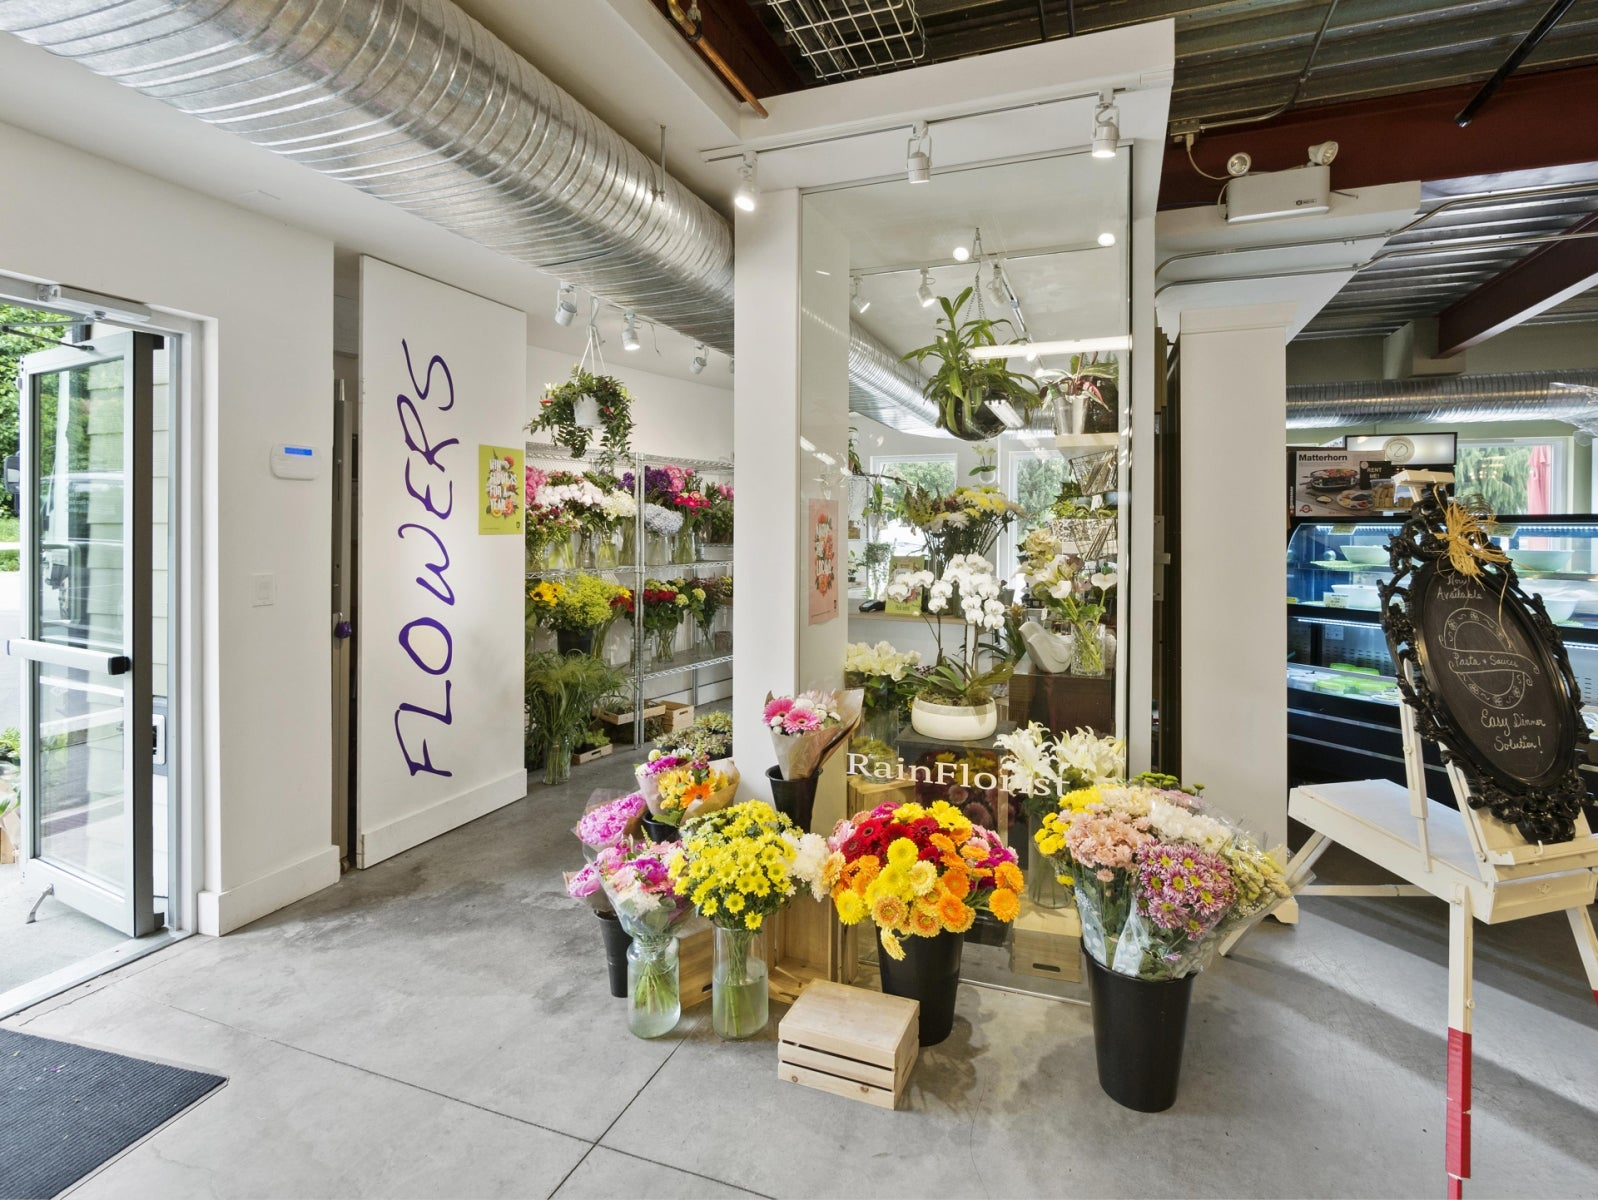 MARKET FLOWER SHOP      1 - 473 Gower Point Road, Gibsons BC V0N1V0 - Gibsons & Area COMM for sale(C8019459) #1